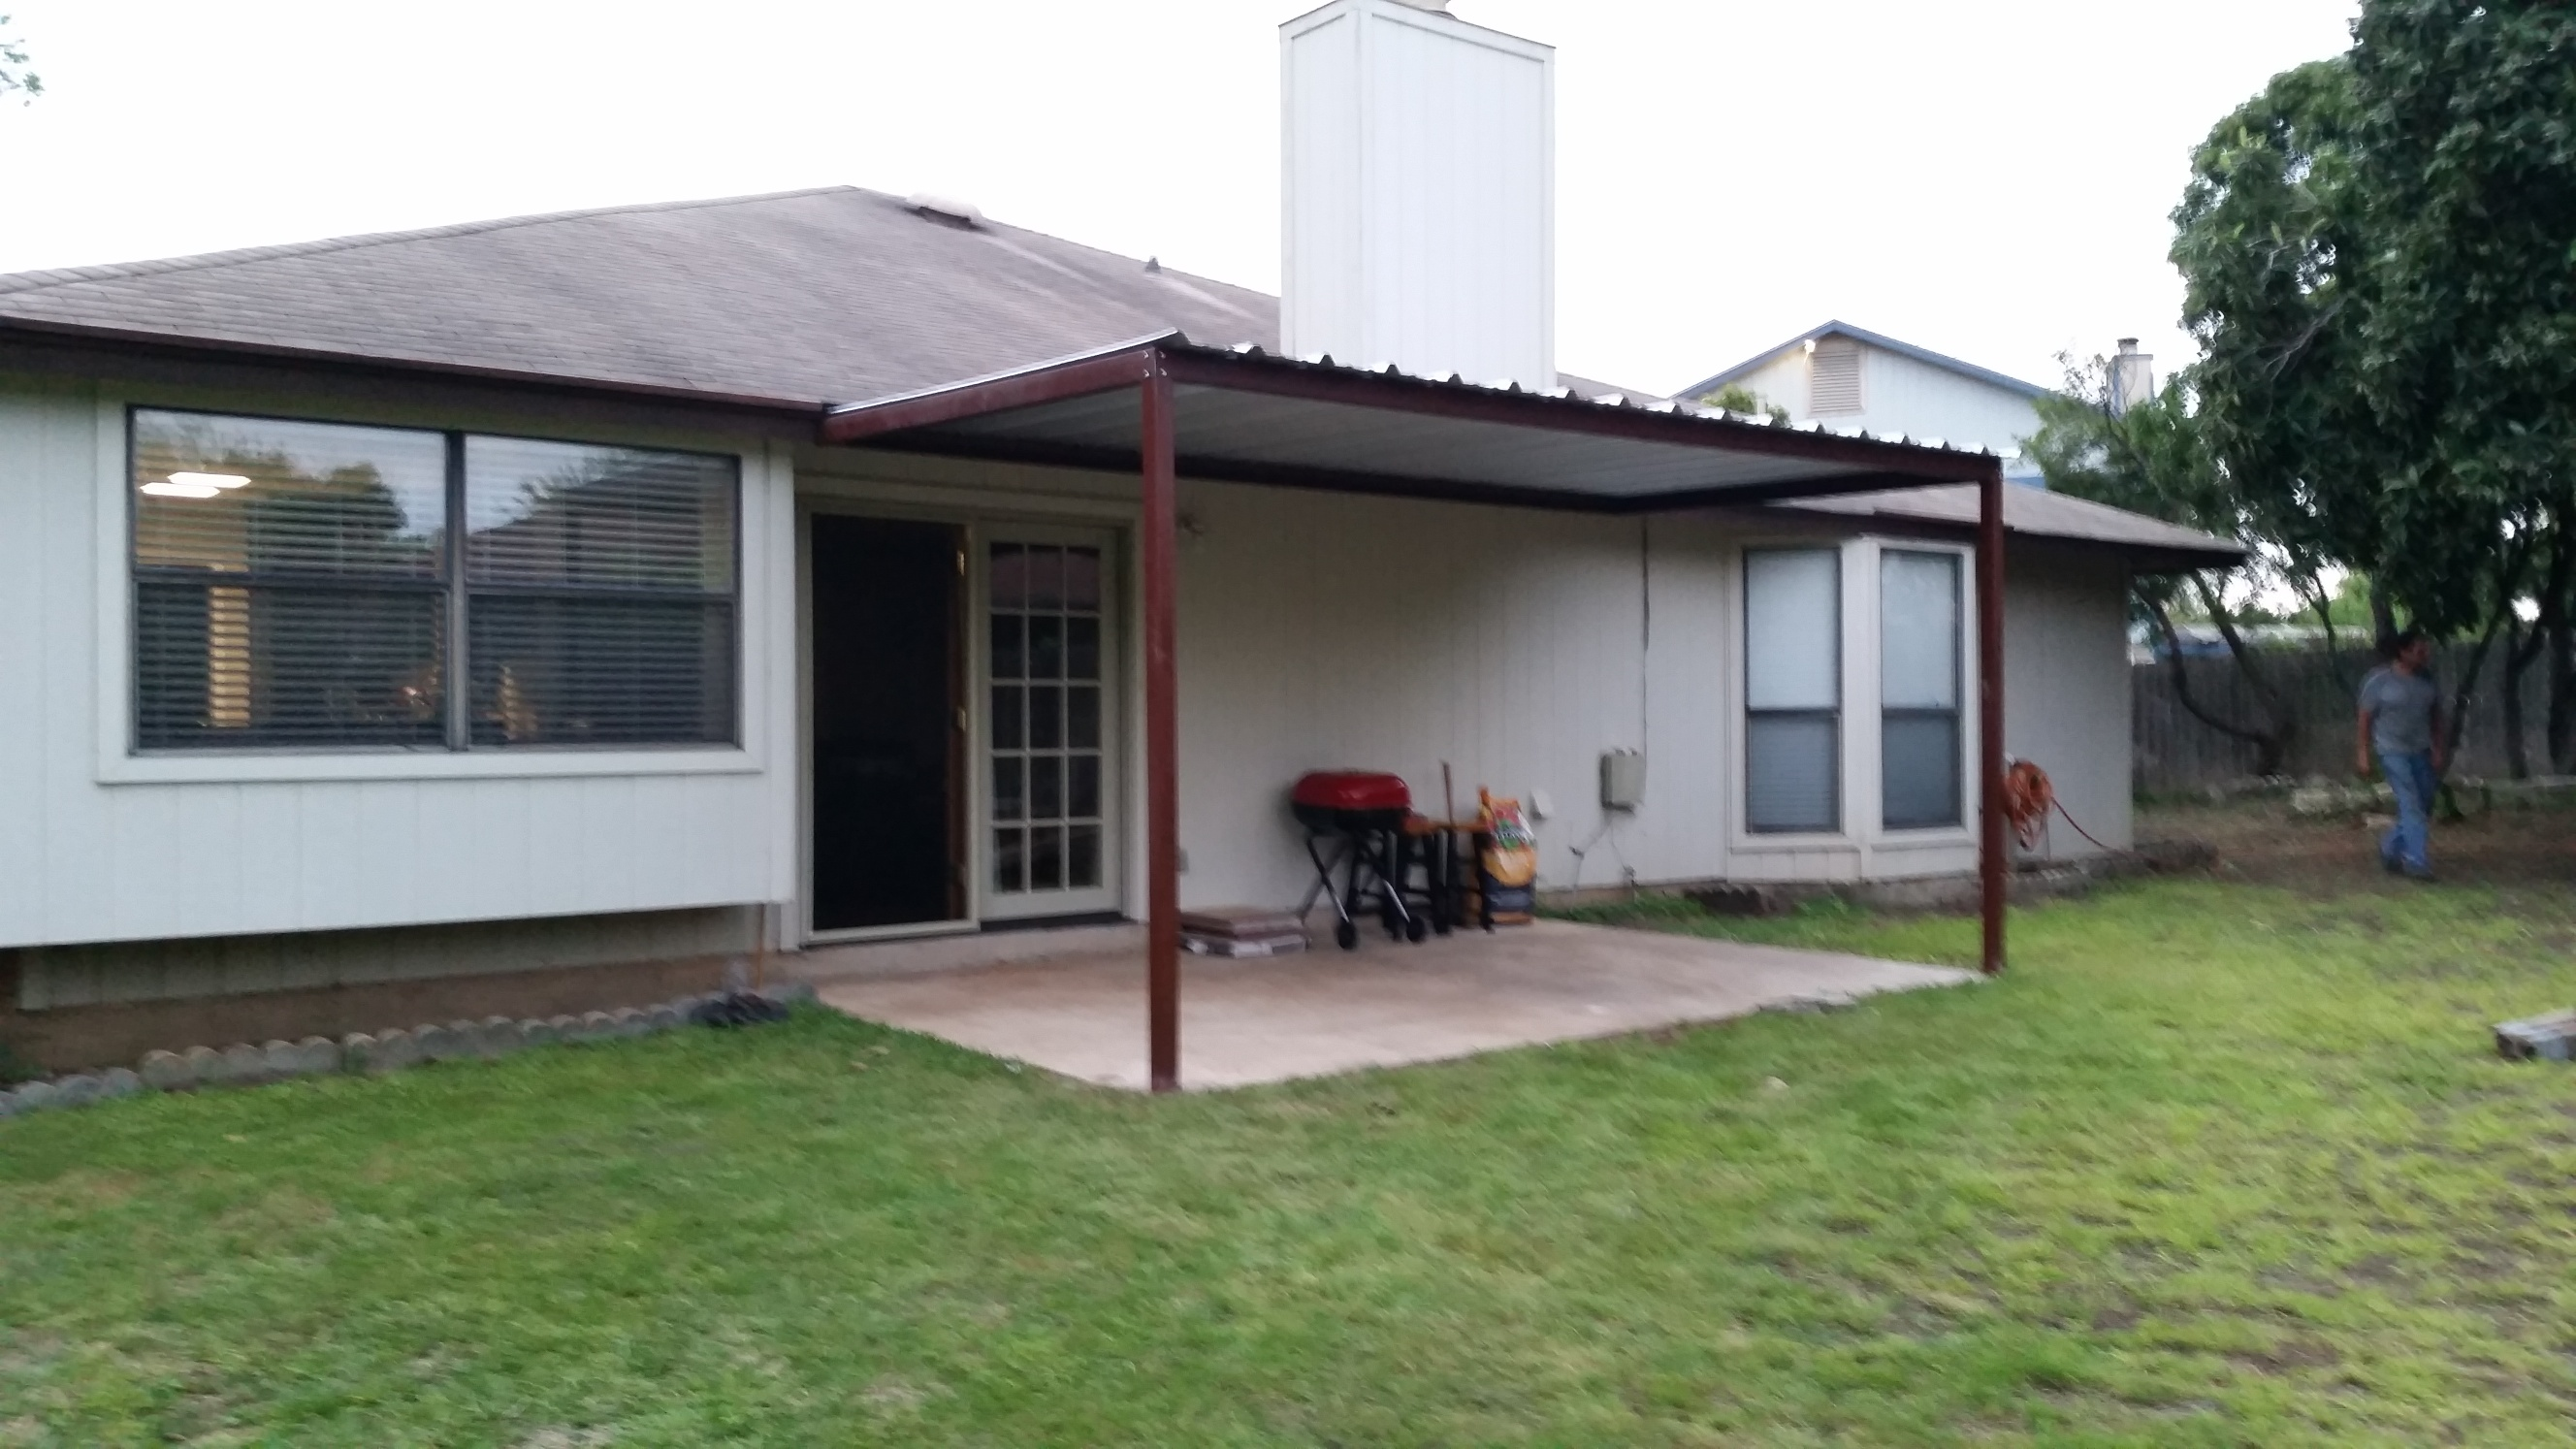 awnings design inspiring home back ideas awning made mobile homes small outdoor how pre porches a overhang fo with porch front build for to